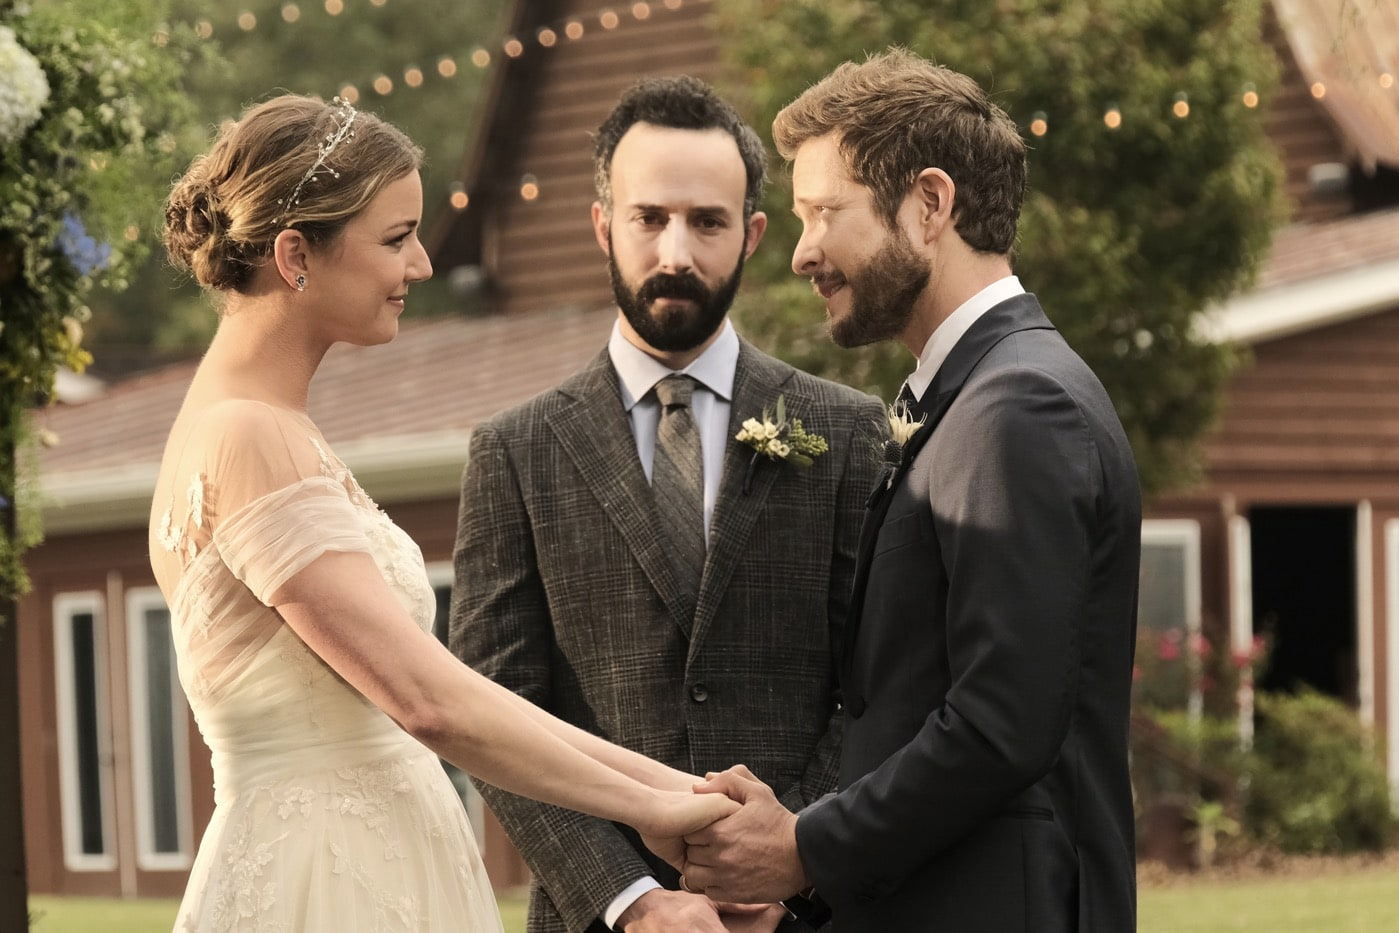 The Resident Season 4 Episode 1 A Wedding, A Funeral